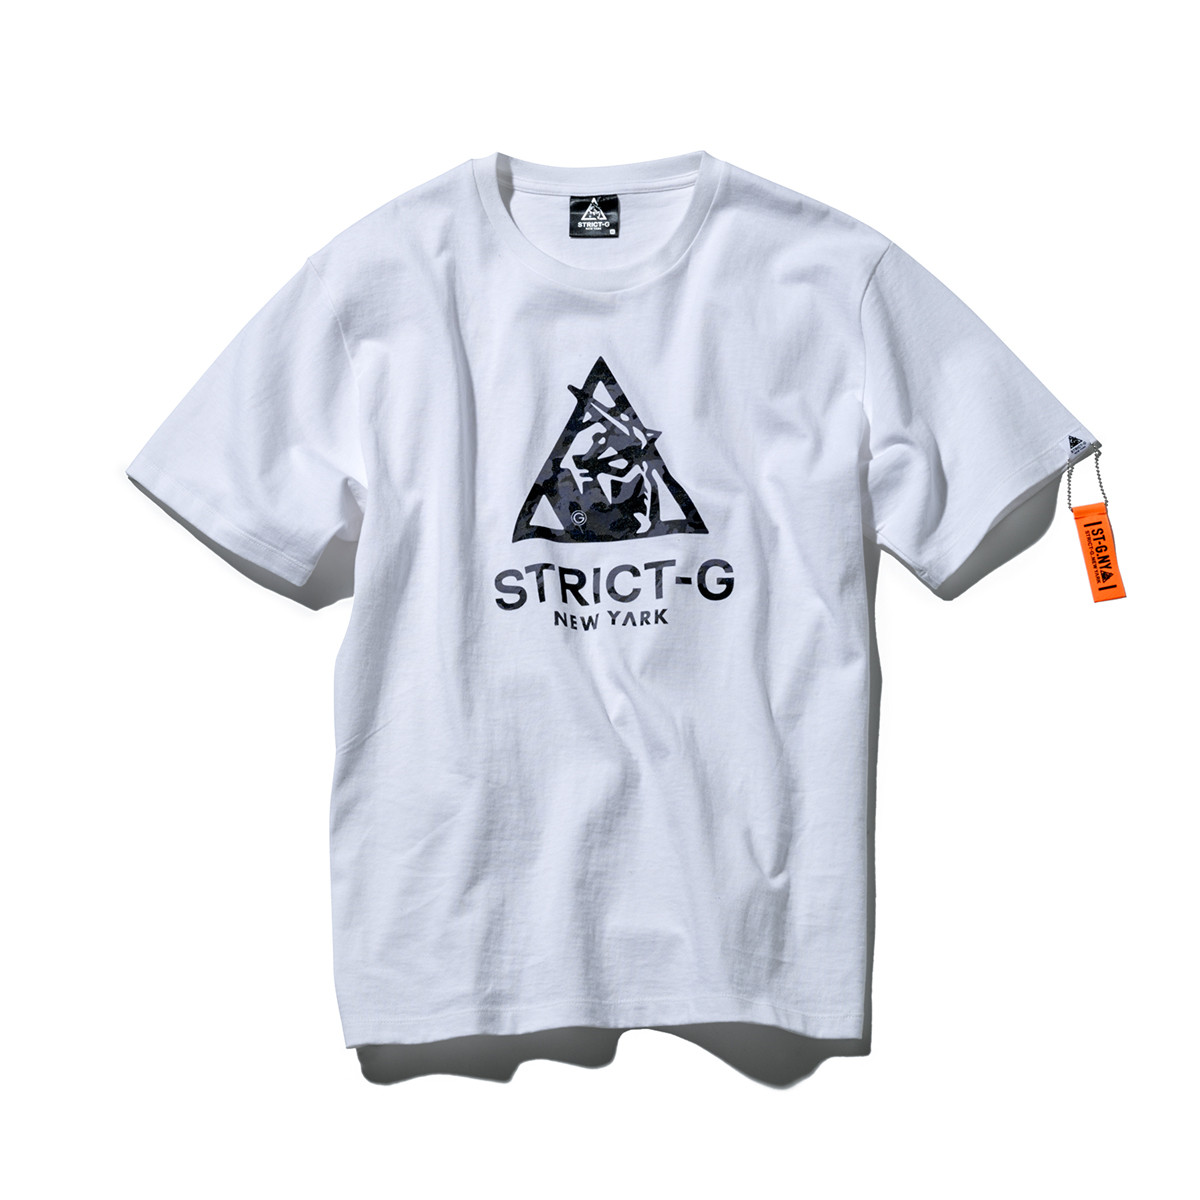 Triangle Logo T-shirt—Mobile Suit Gundam/STRICT-G NEW YARK Collaboration